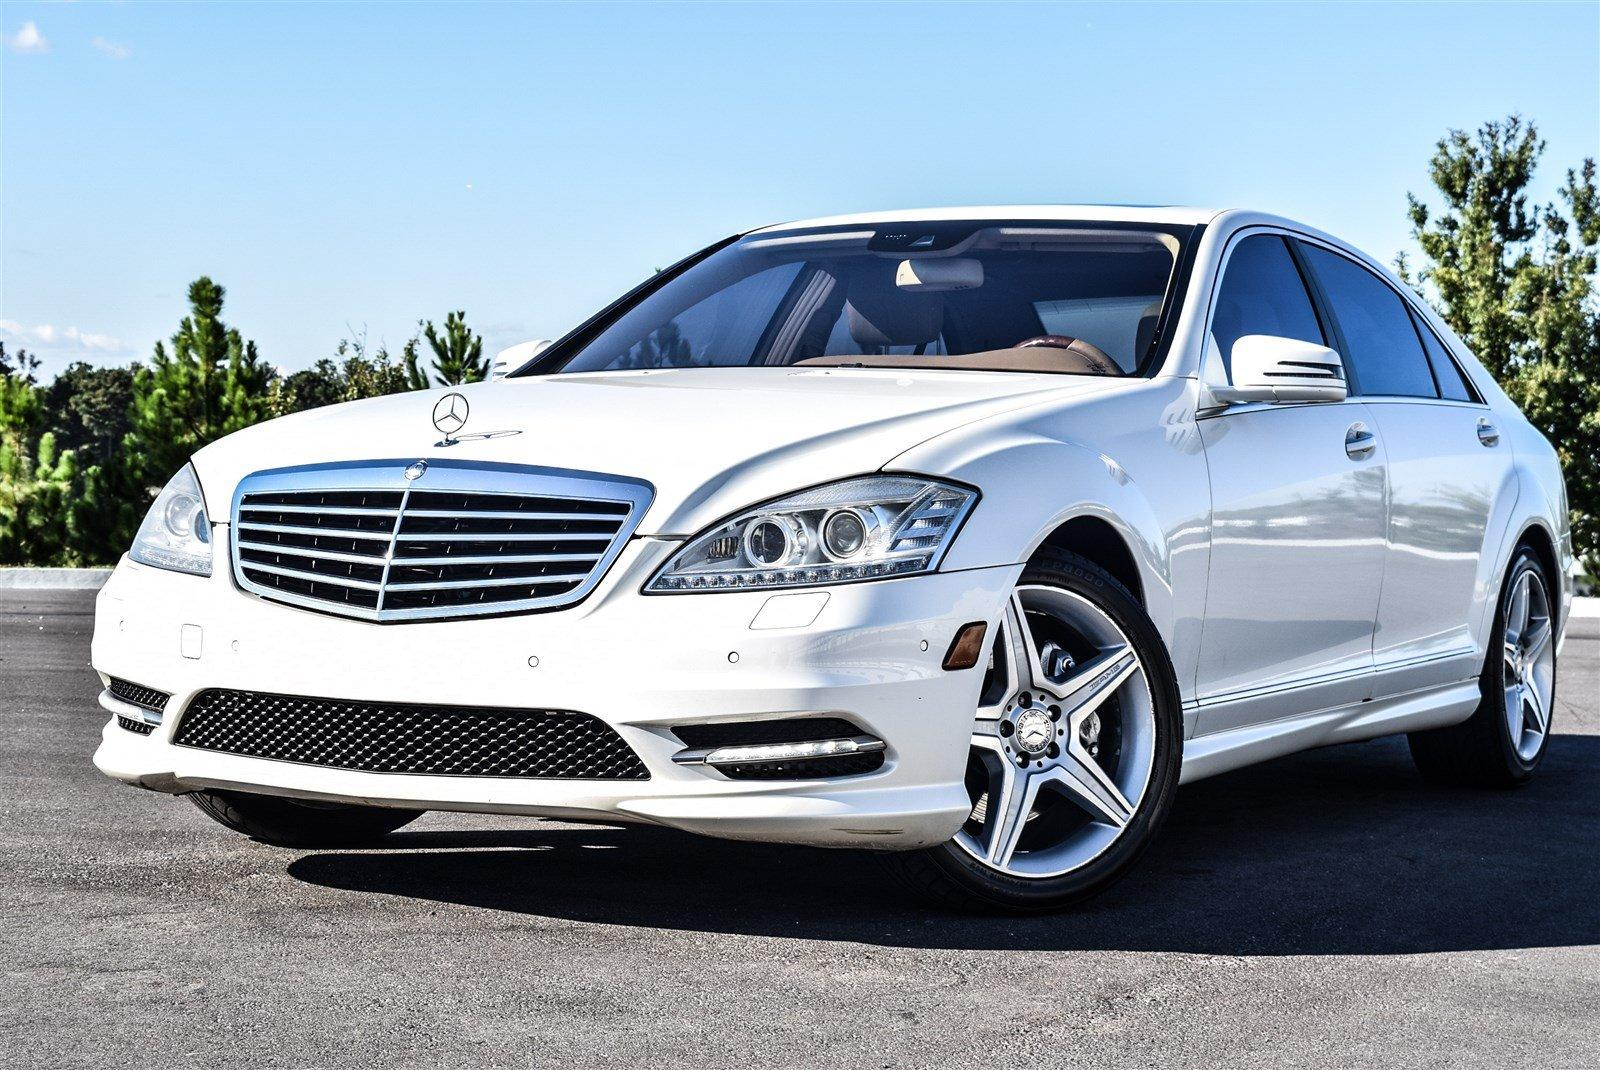 2010 mercedes benz s class s550 stock 335738 for sale. Black Bedroom Furniture Sets. Home Design Ideas